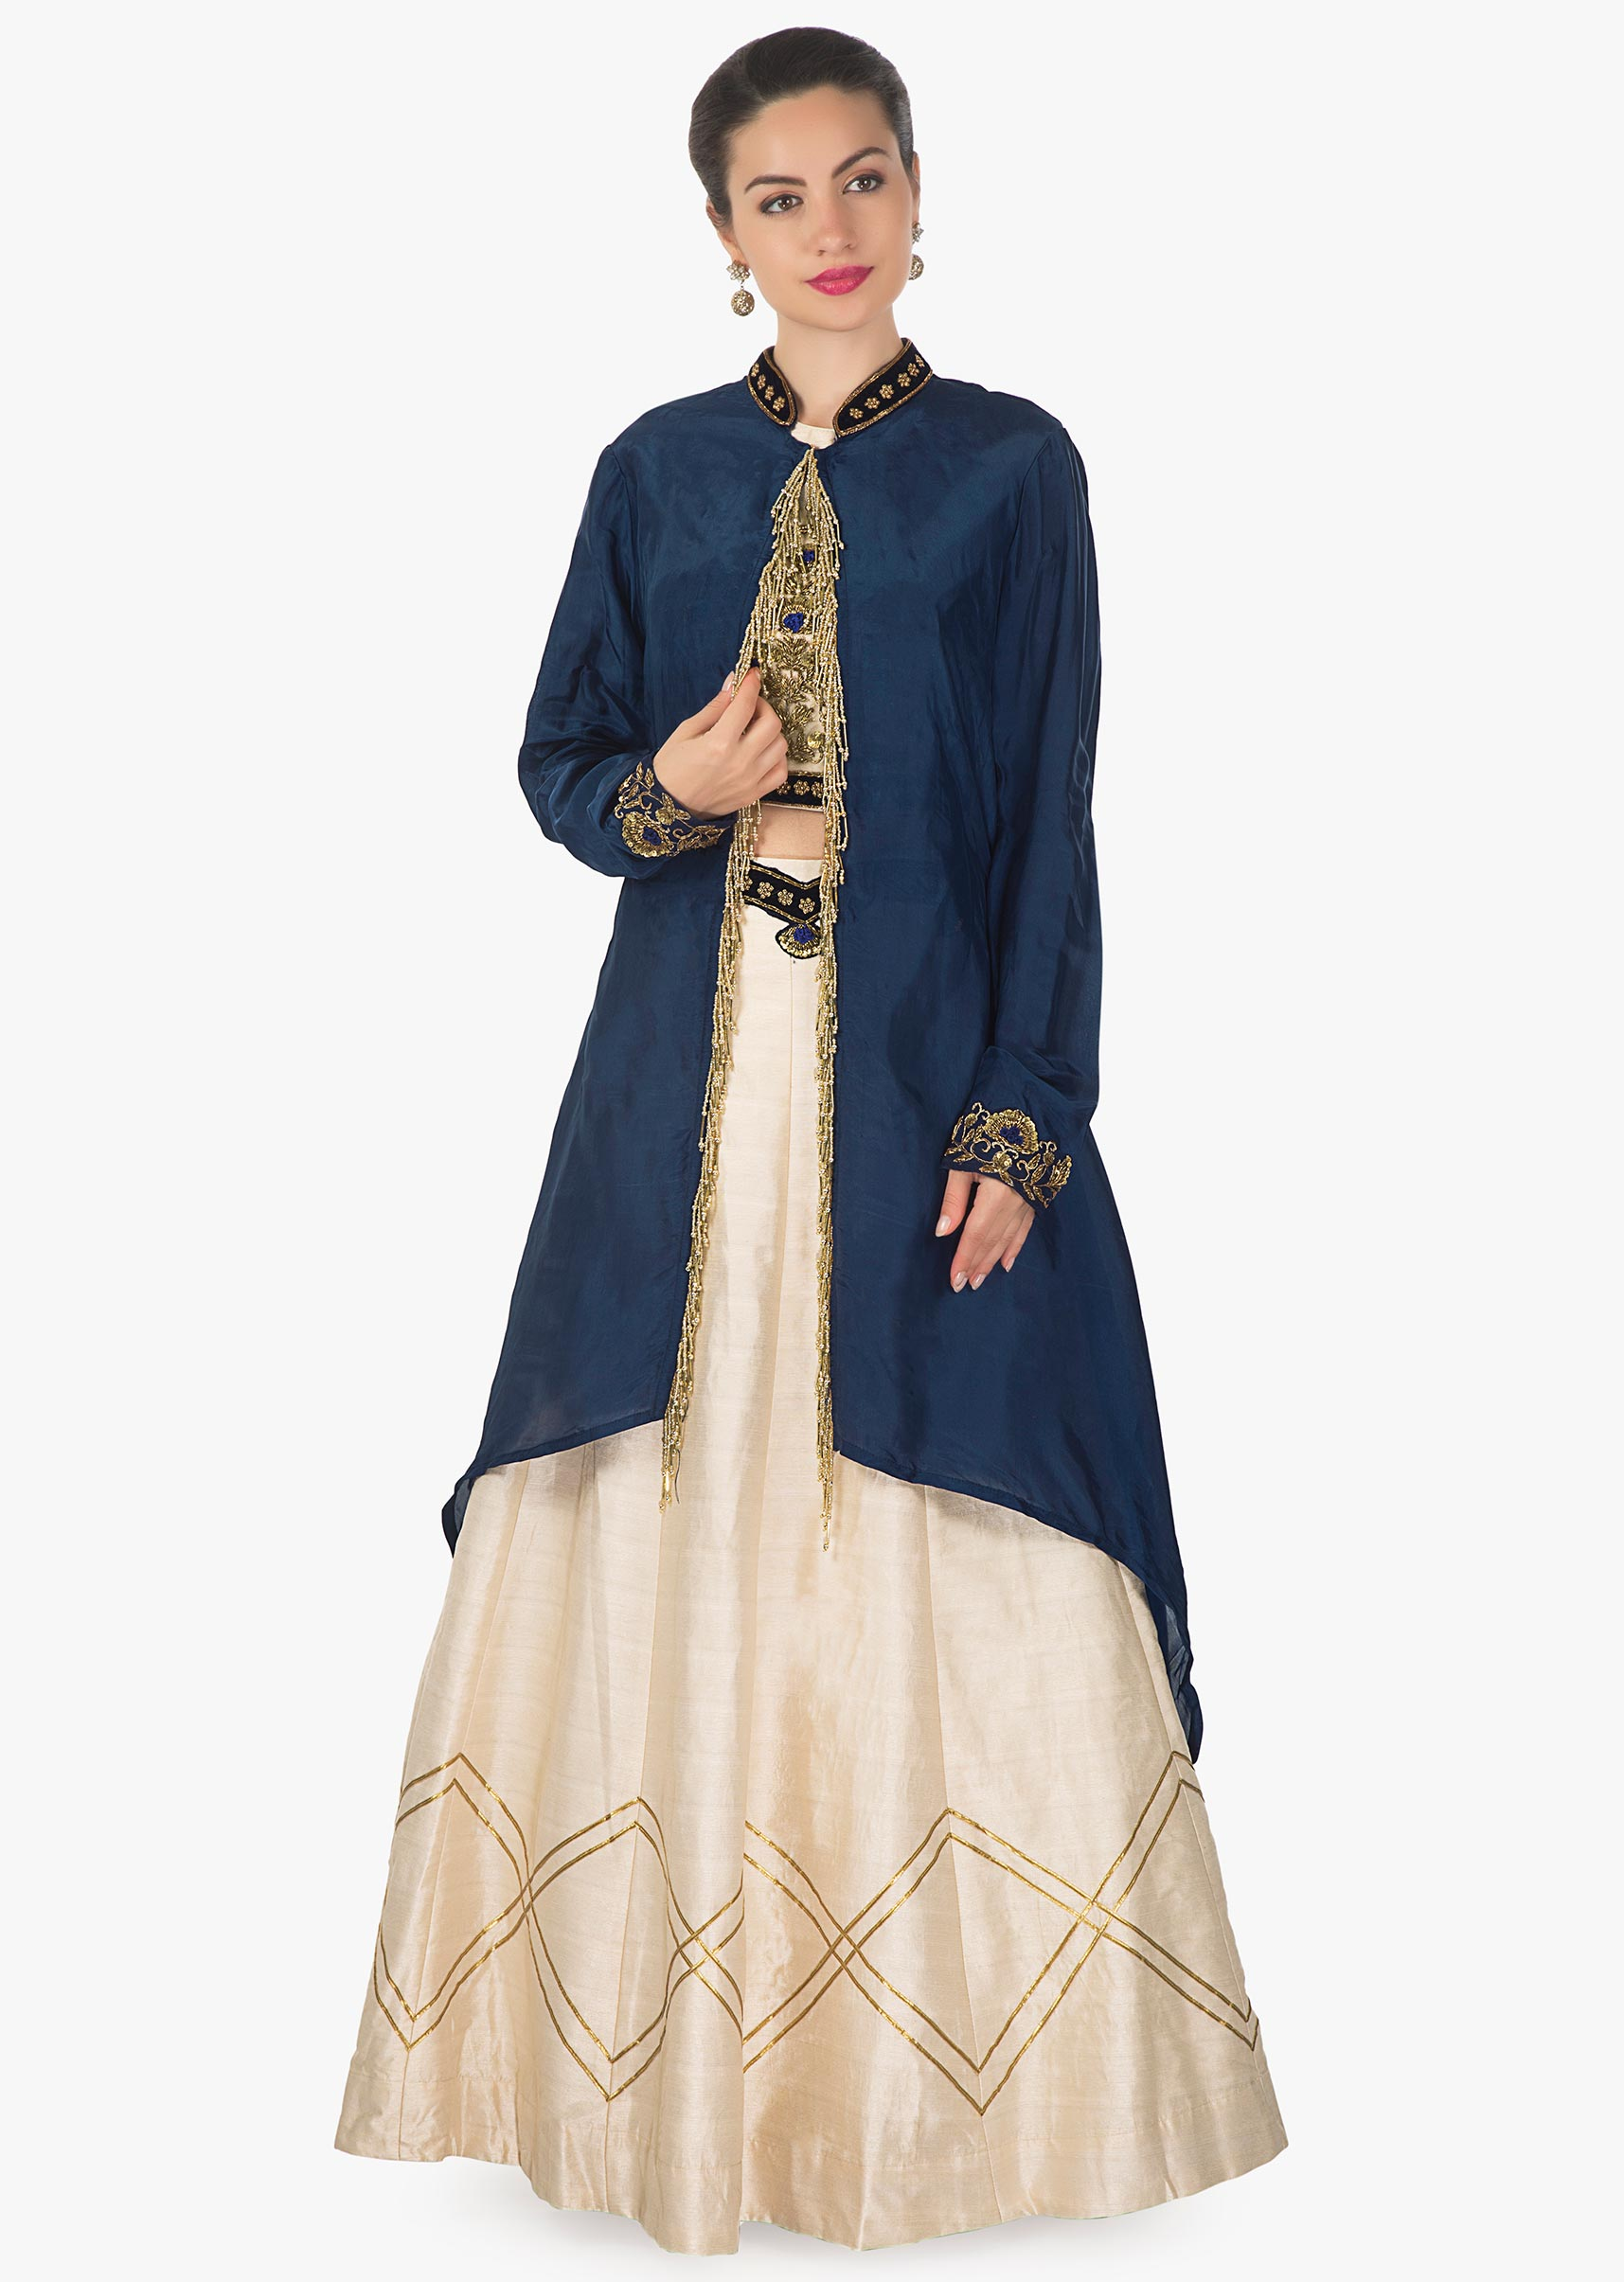 a56f99a1bec7bf Cream lehenga and blouse in raw silk with navy blue jacket adorn in tassel  only on KalkiMore Detail